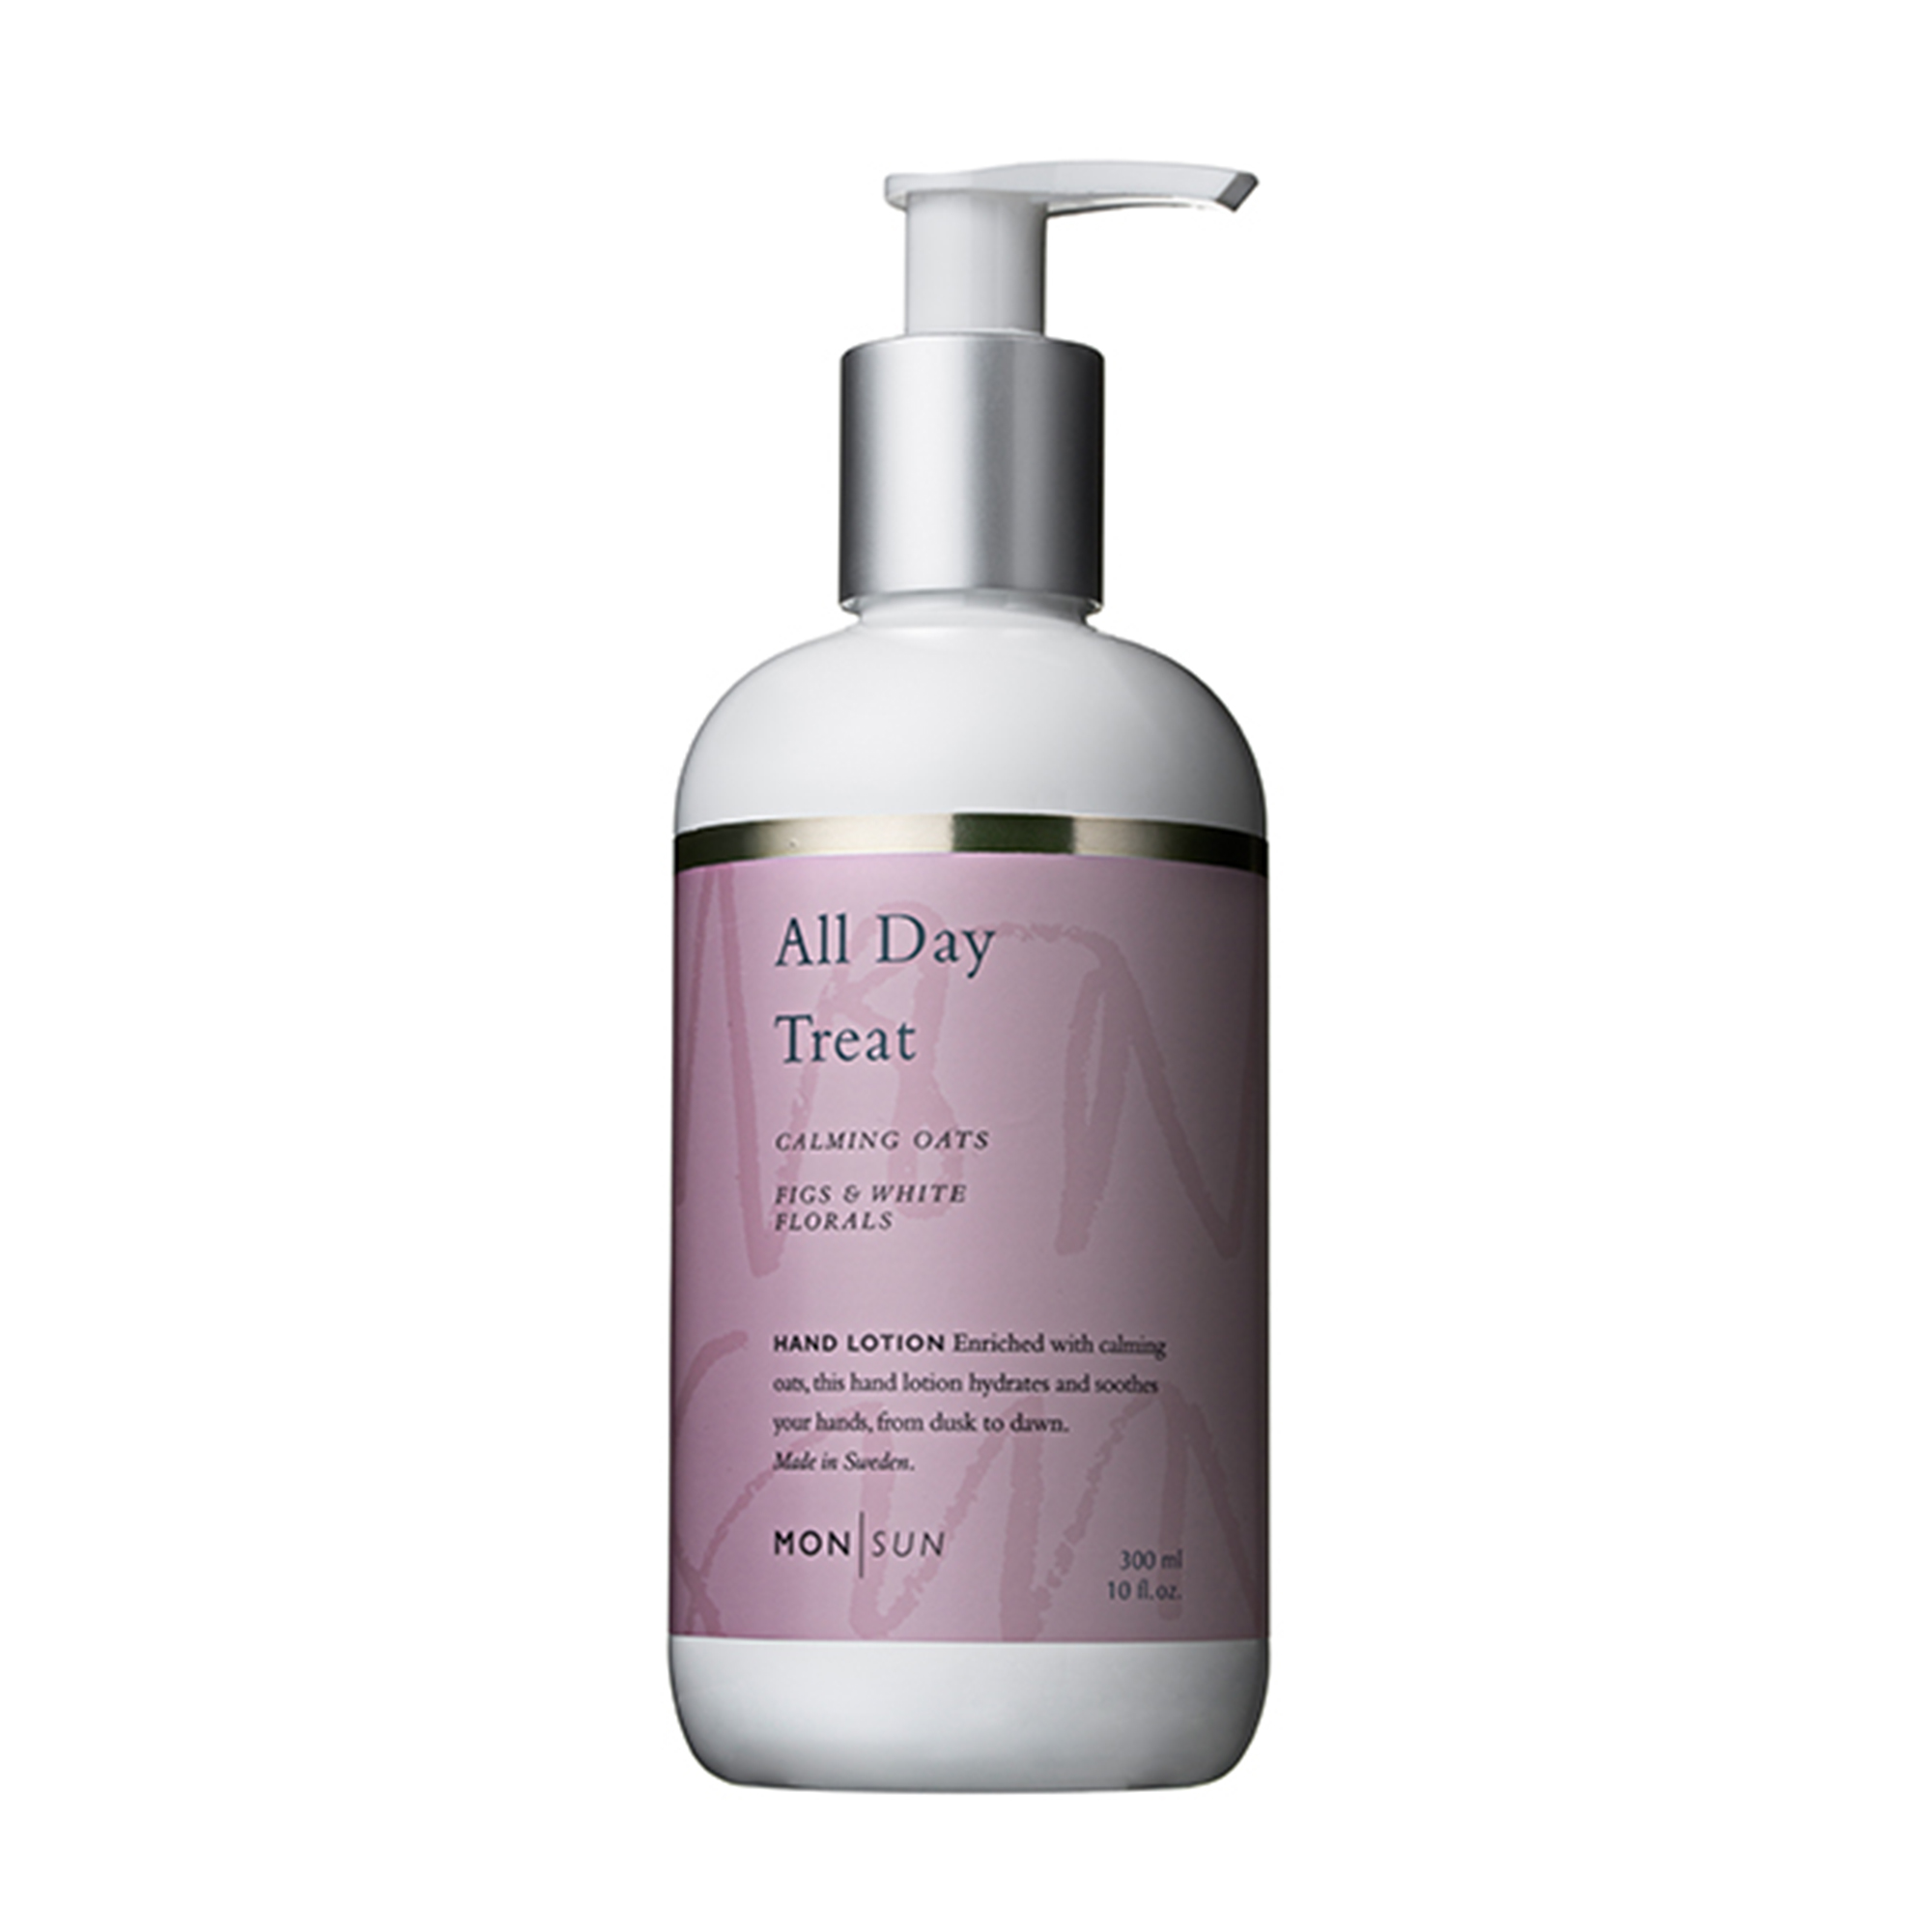 All Day Treat Calming Oats Hand Lotion